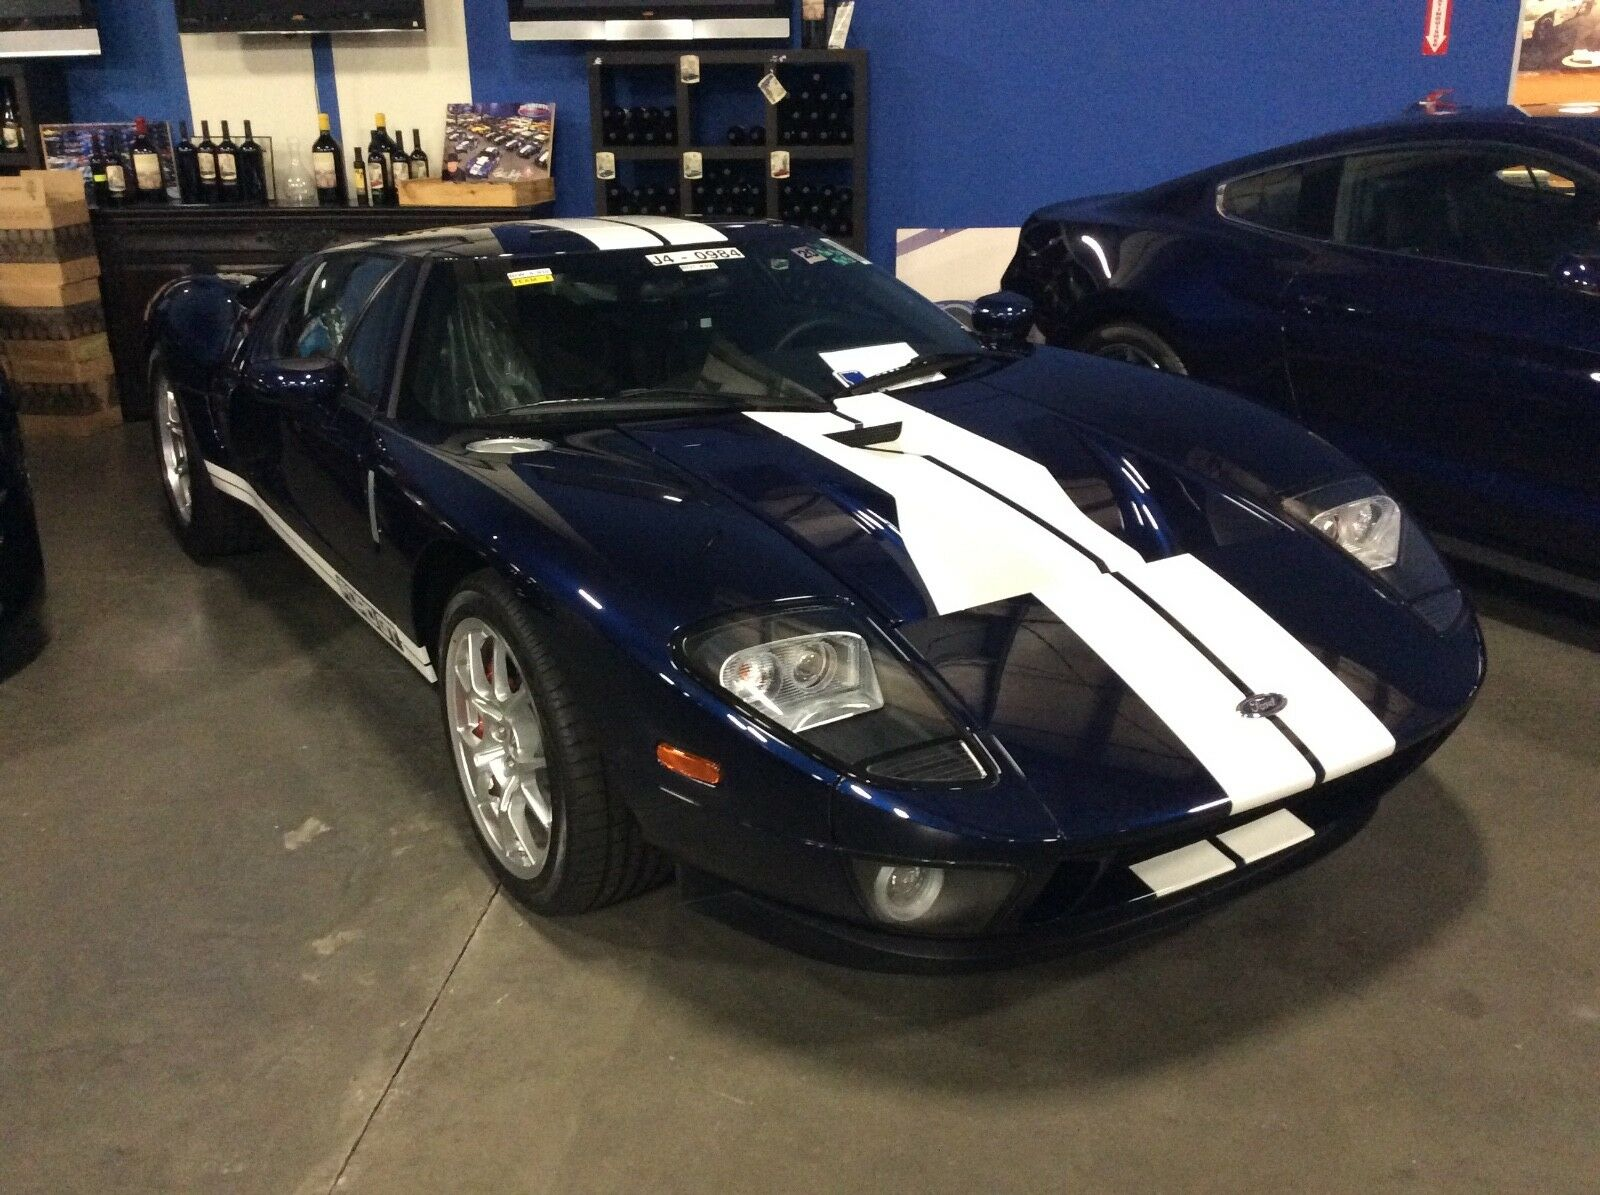 2005 Ford Ford GT Base 2dr Coupe 2005 Ford GT - 51 Original Miles New in Wrapper - Original Owner California Car